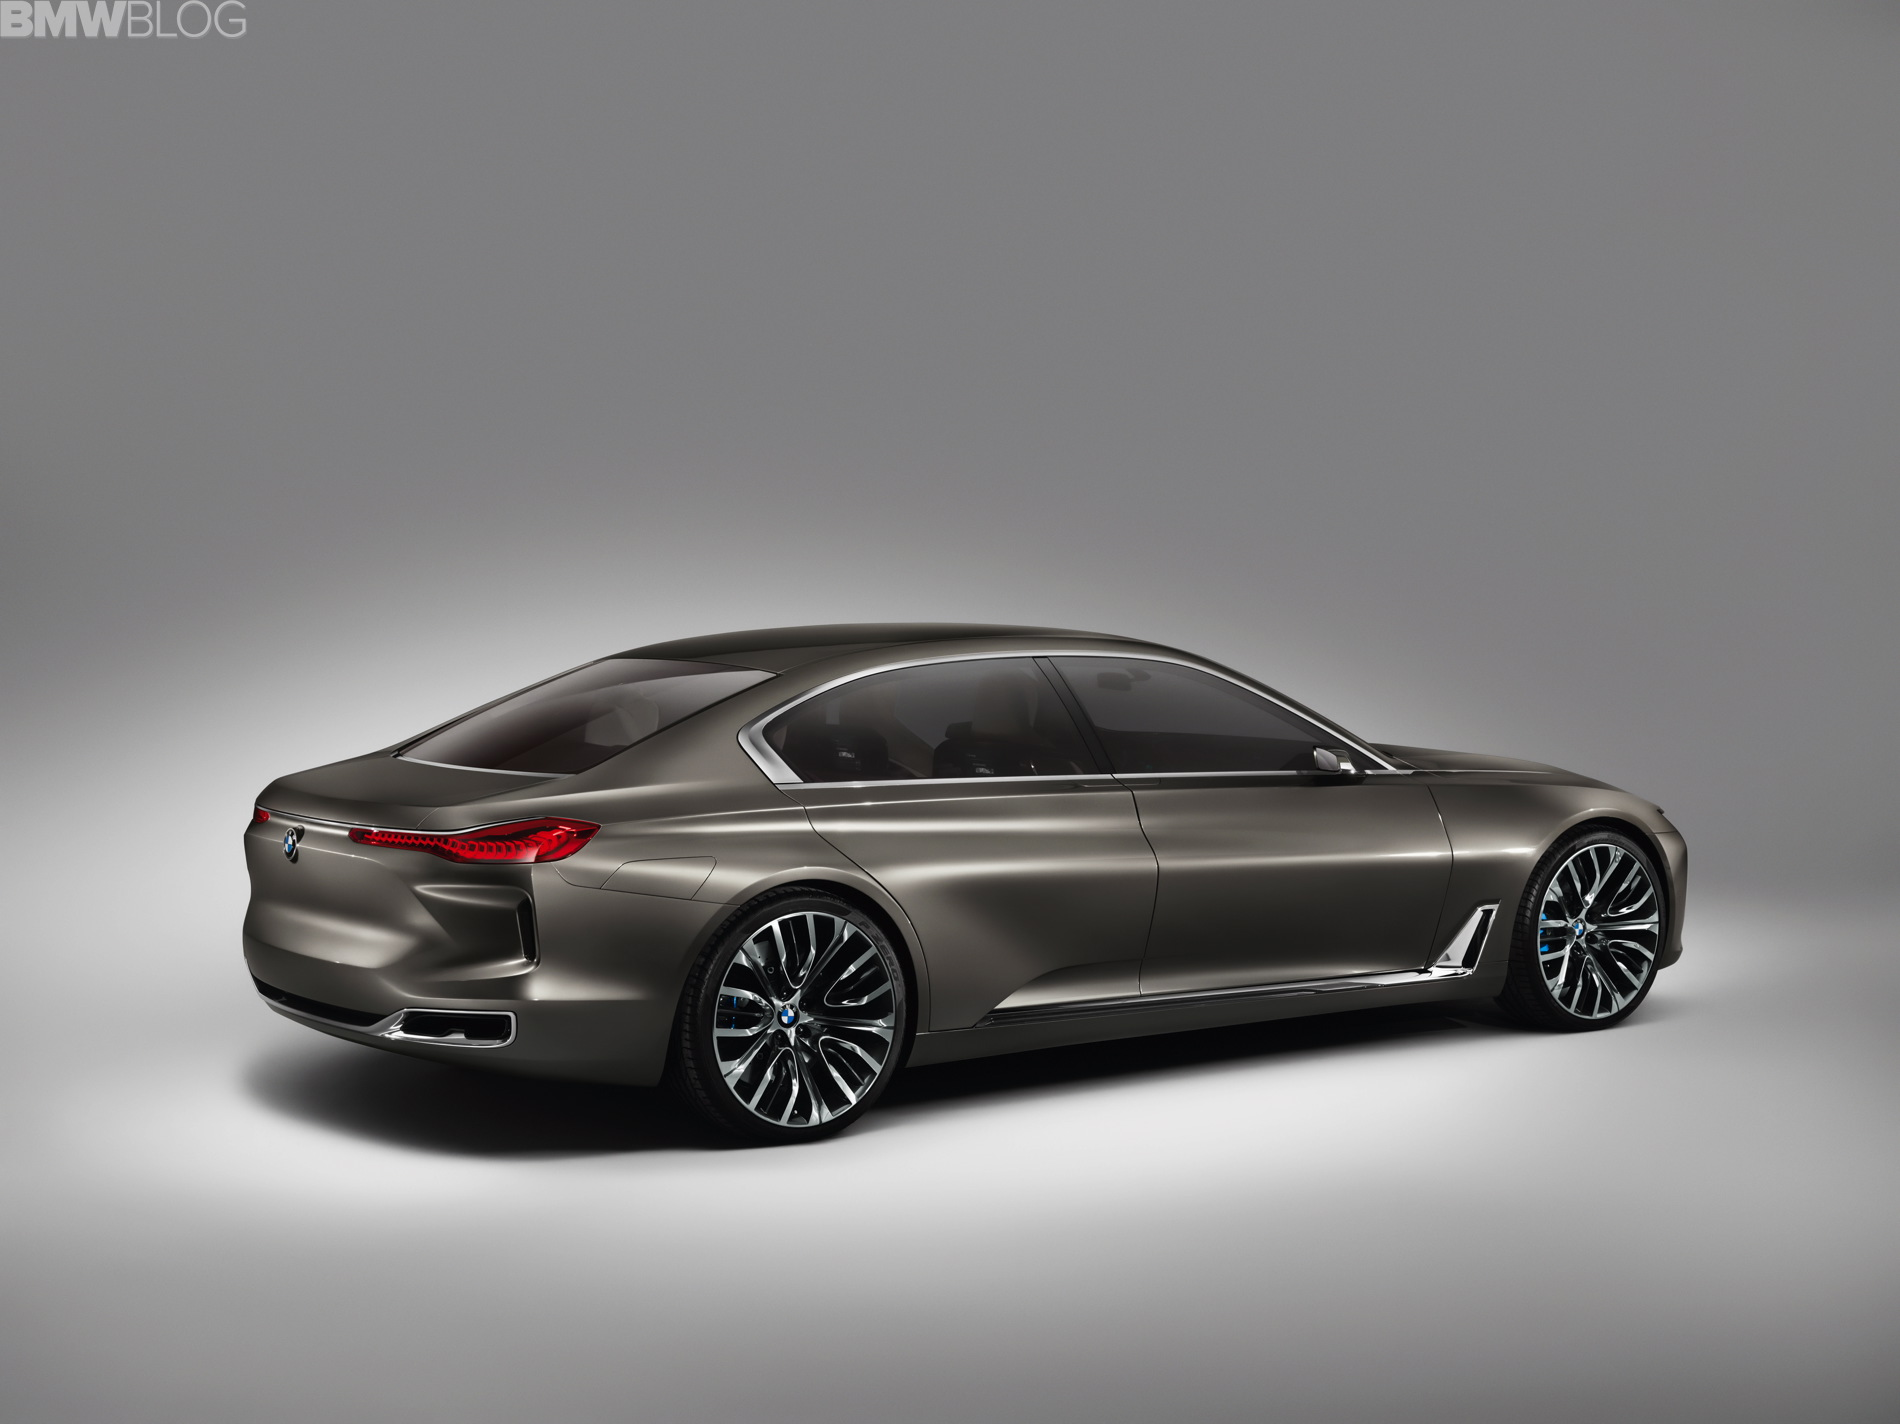 High Resolution Wallpaper   2014 Bmw Vision Future Luxury Concept 1900x1424 px